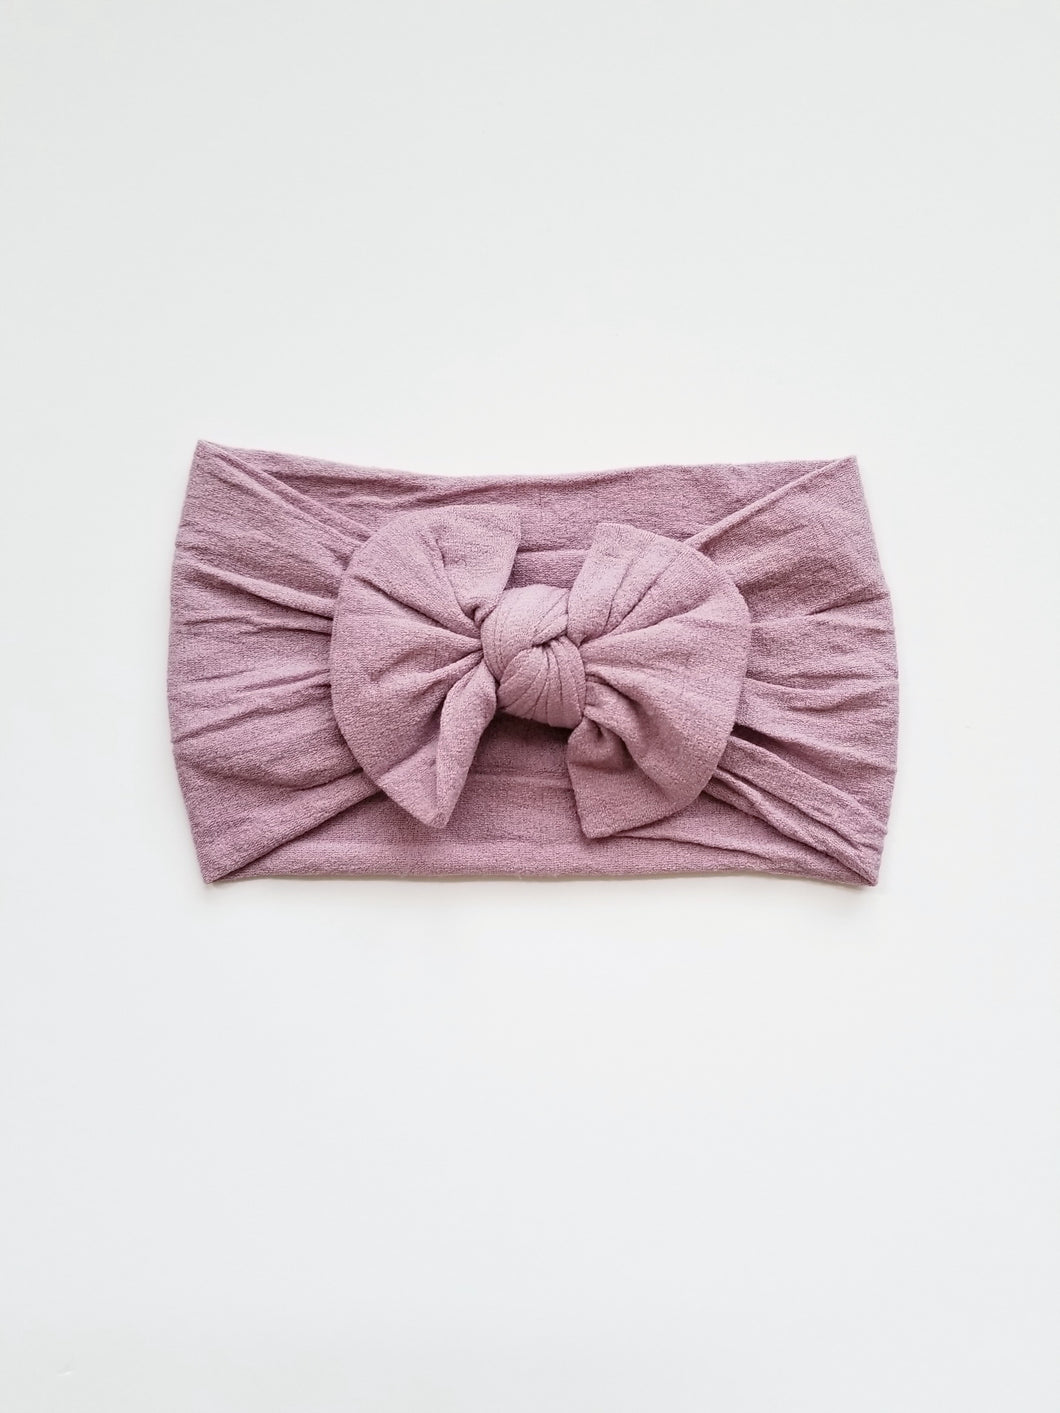 Nylon Bow Headwrap In Lilac - Adassa Rose